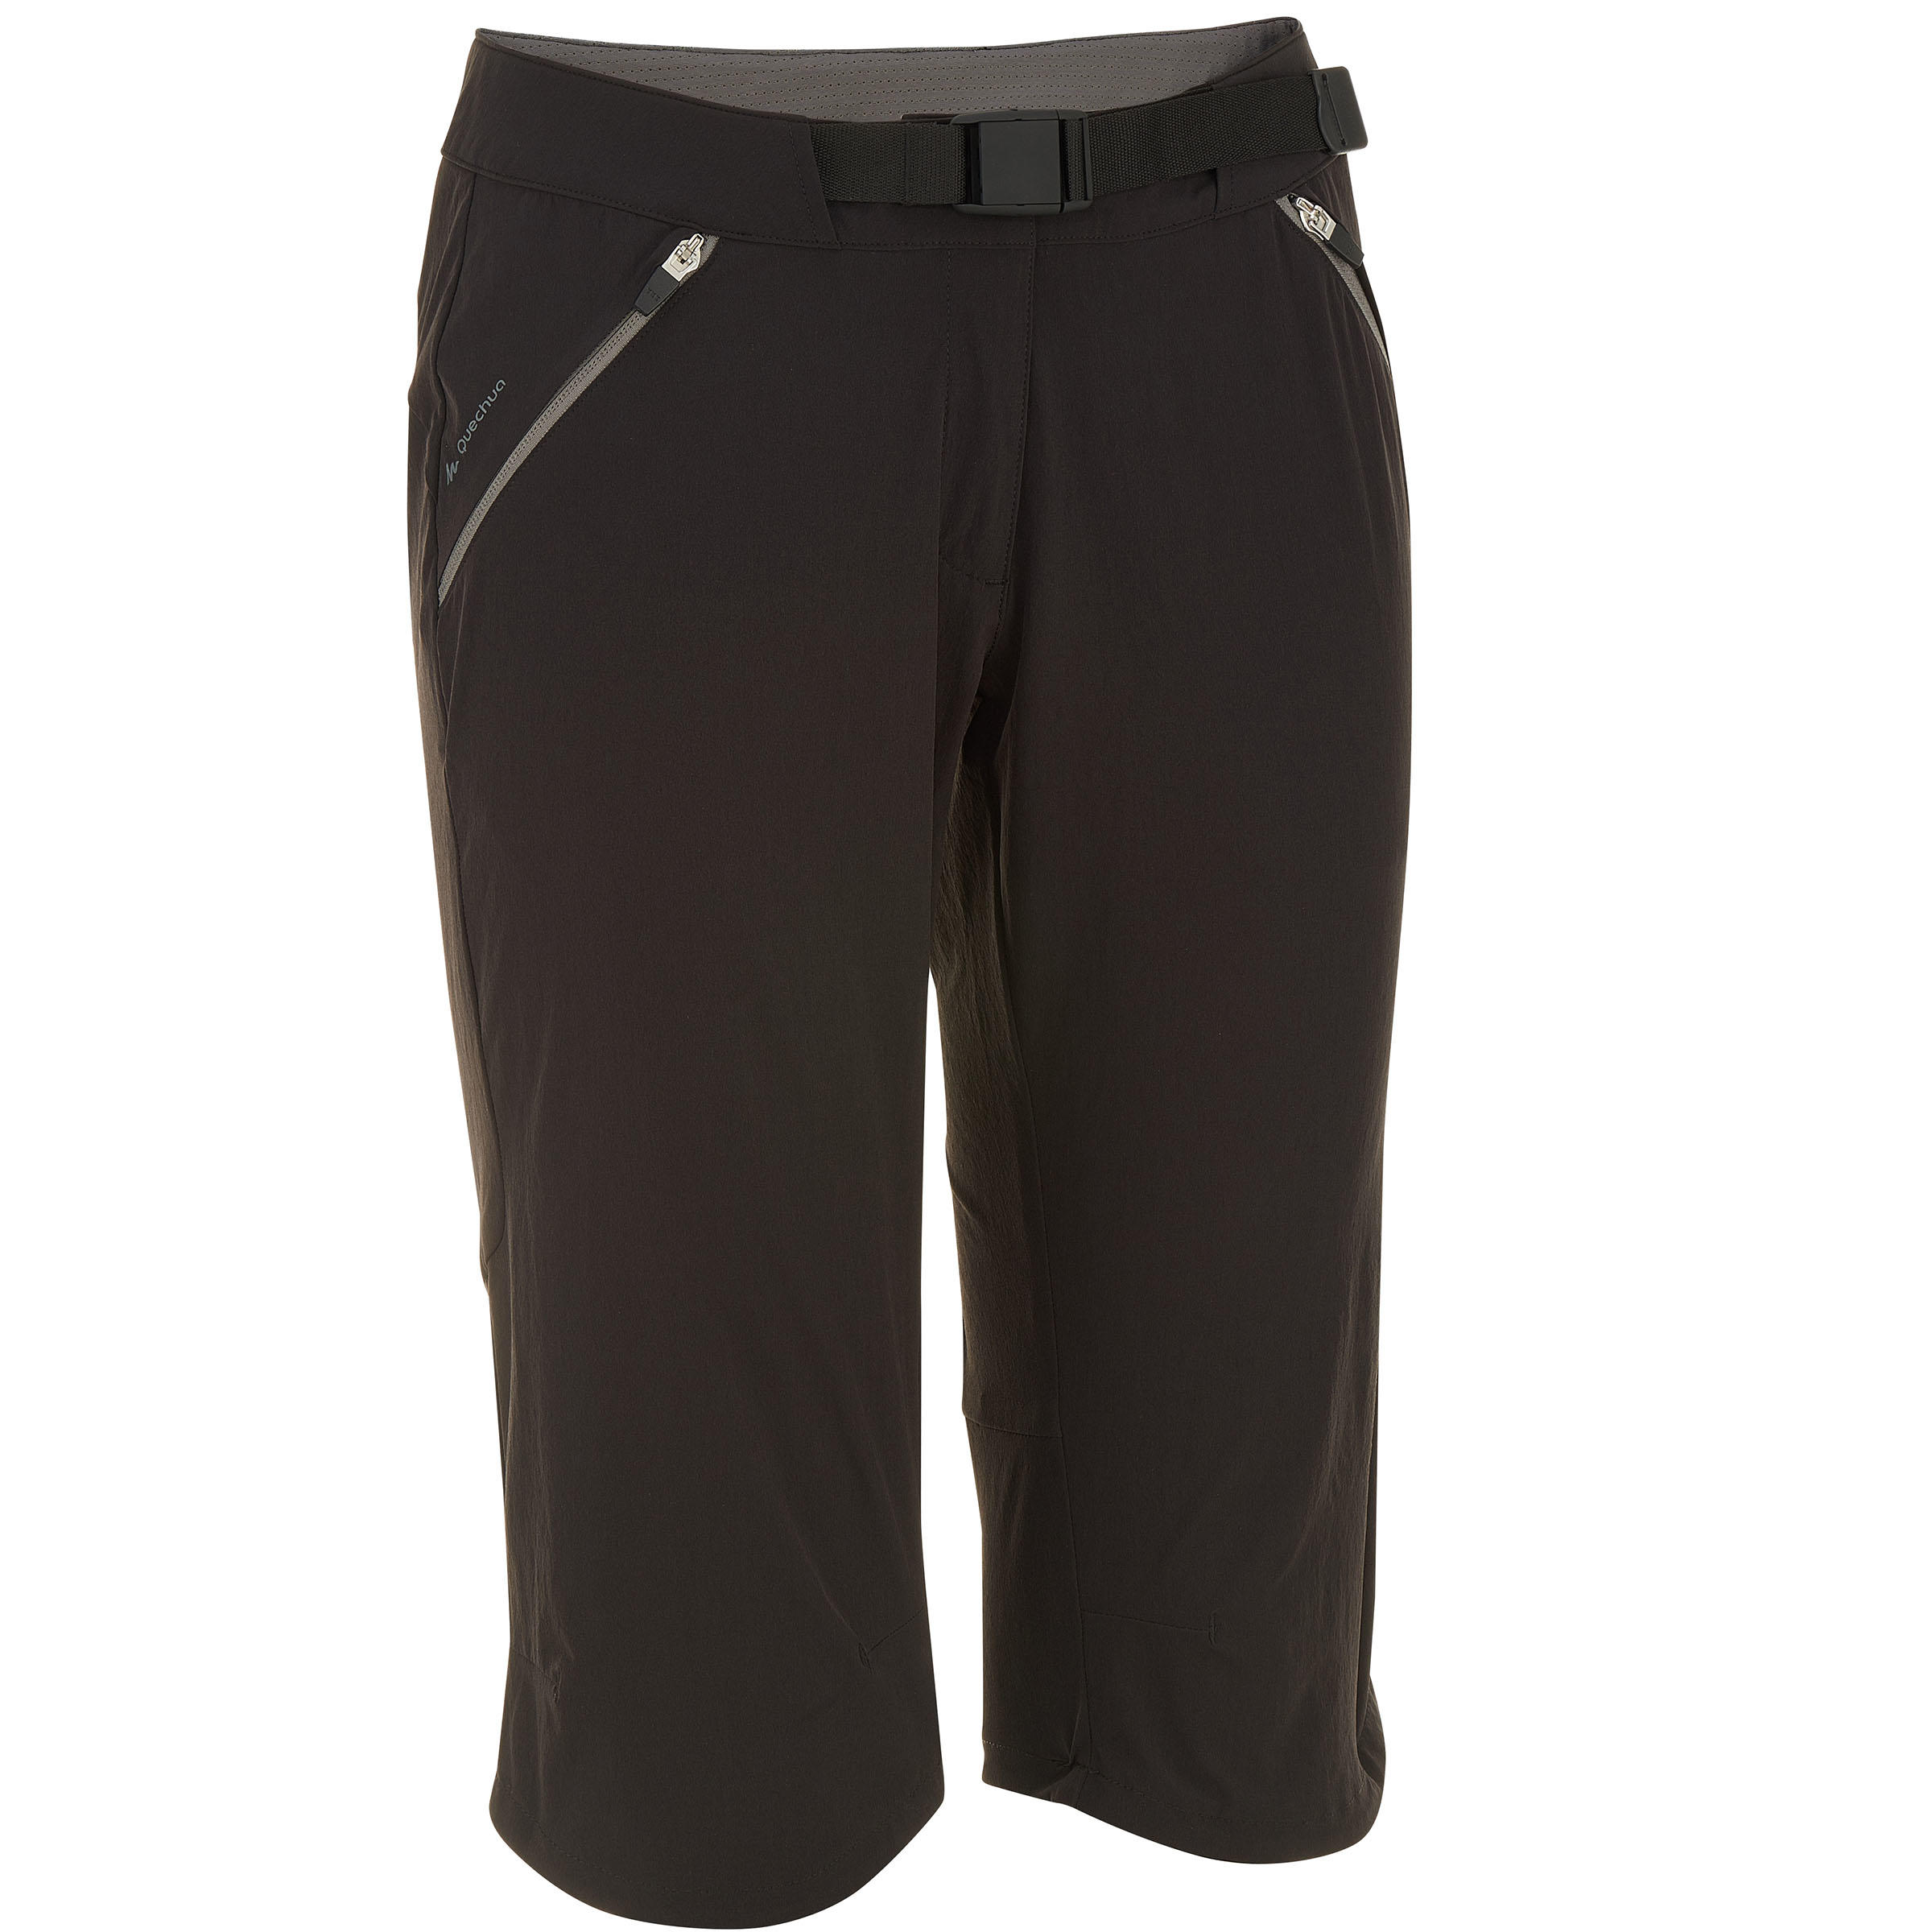 Forclaz 500 Women's Cropped Hiking Trousers - Black